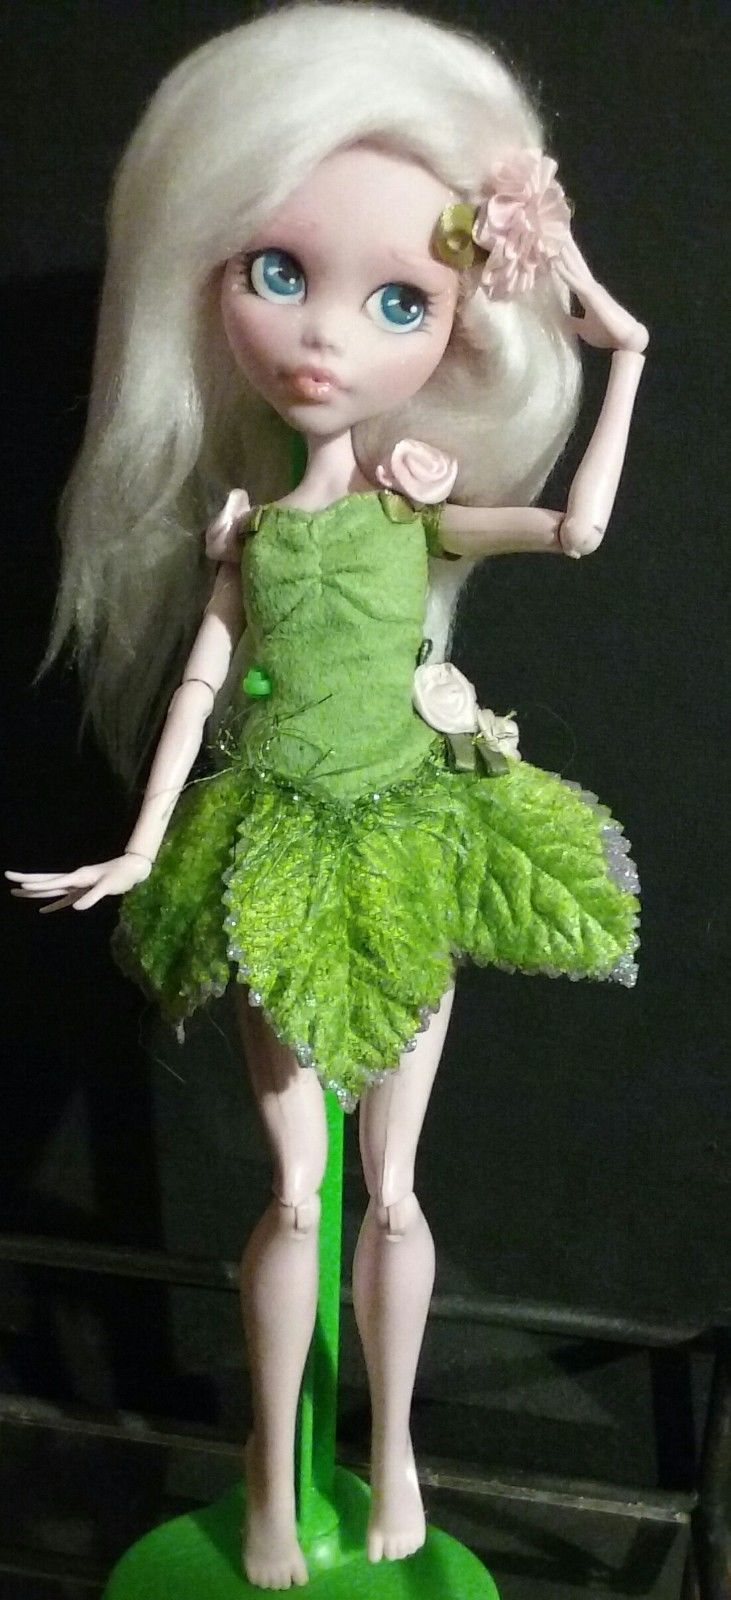 OOAK Monster High Pixie Draculaura  Collector Doll Repaint by American artist J.S.A.L. She comes barefoot wearing outfit shown.  Hair is removable hand made wig.  Random doll stand included. | eBay!